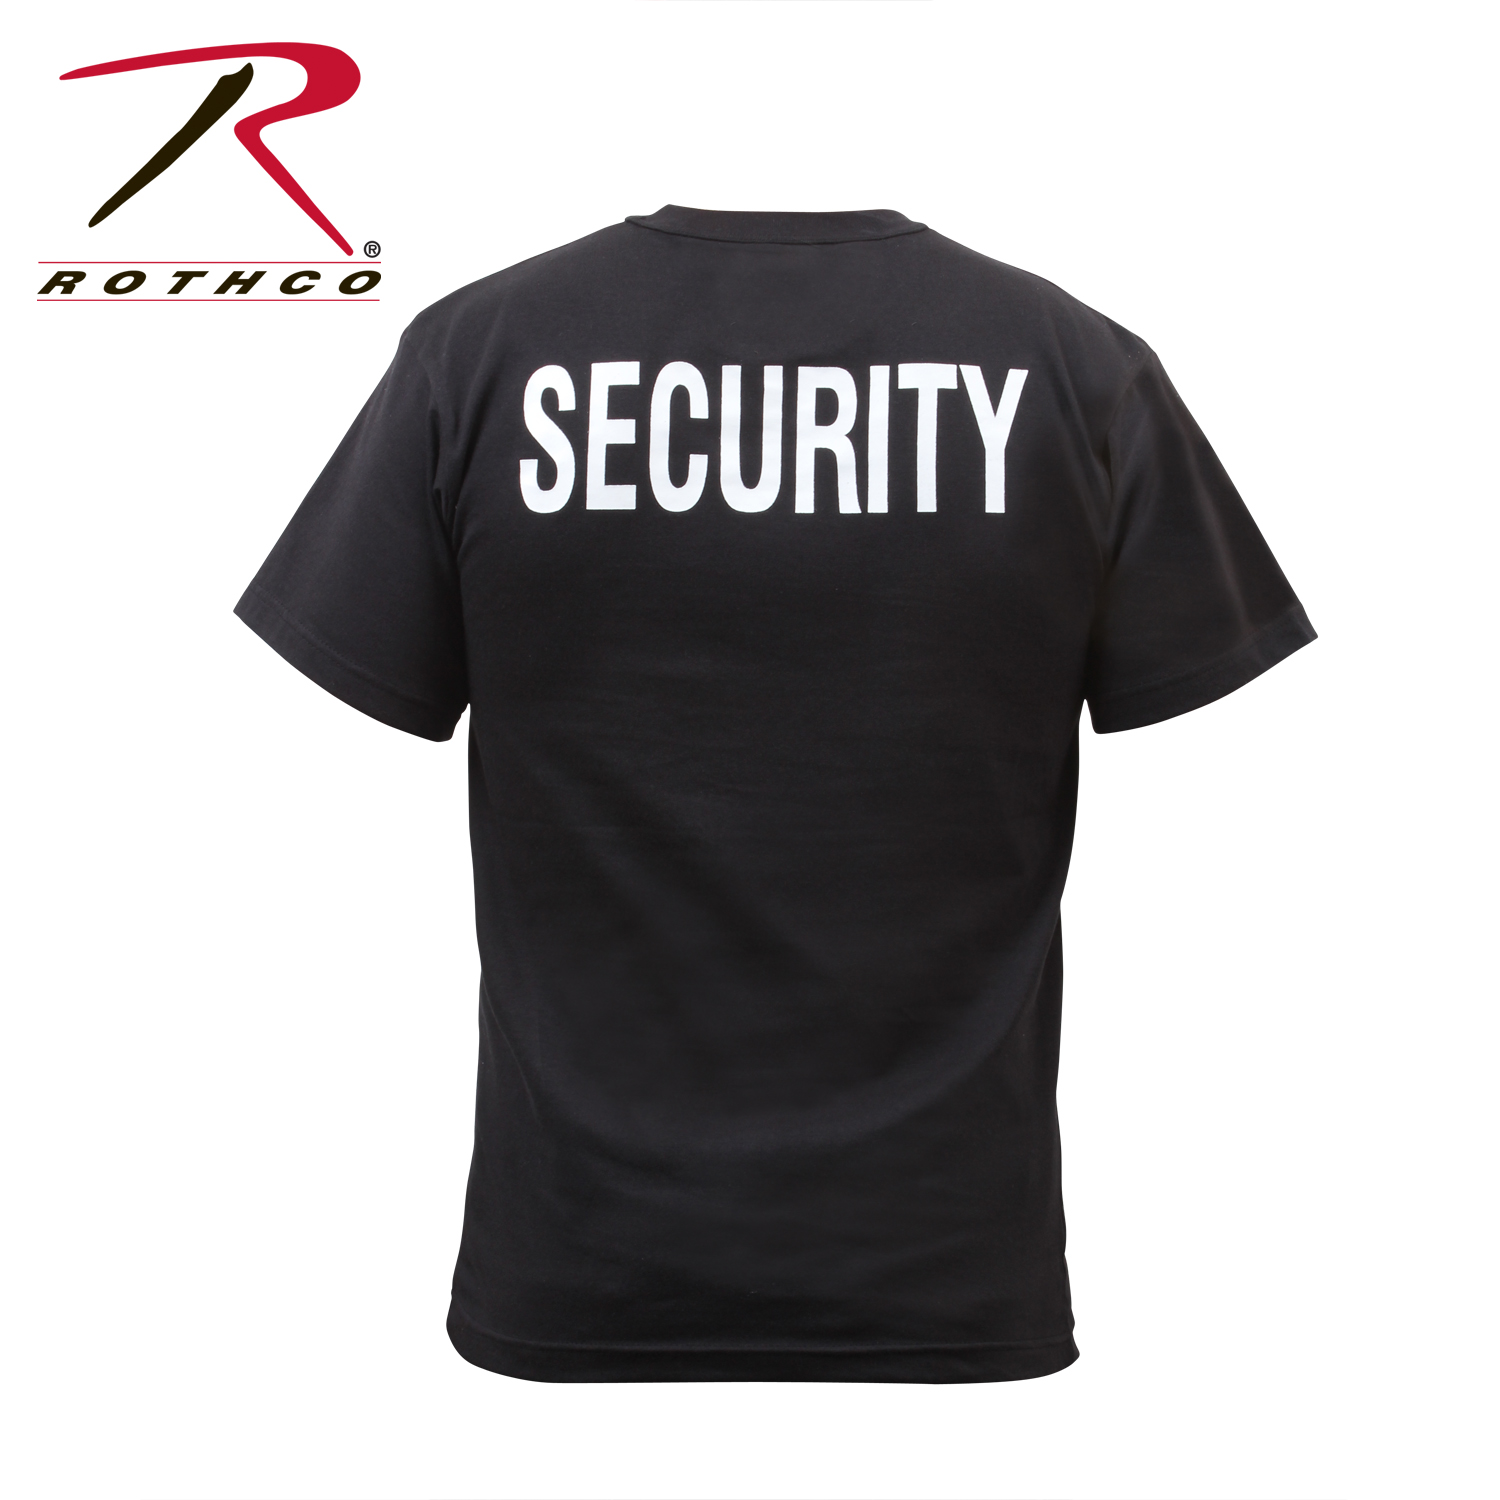 Black t shirt security - Loading Zoom